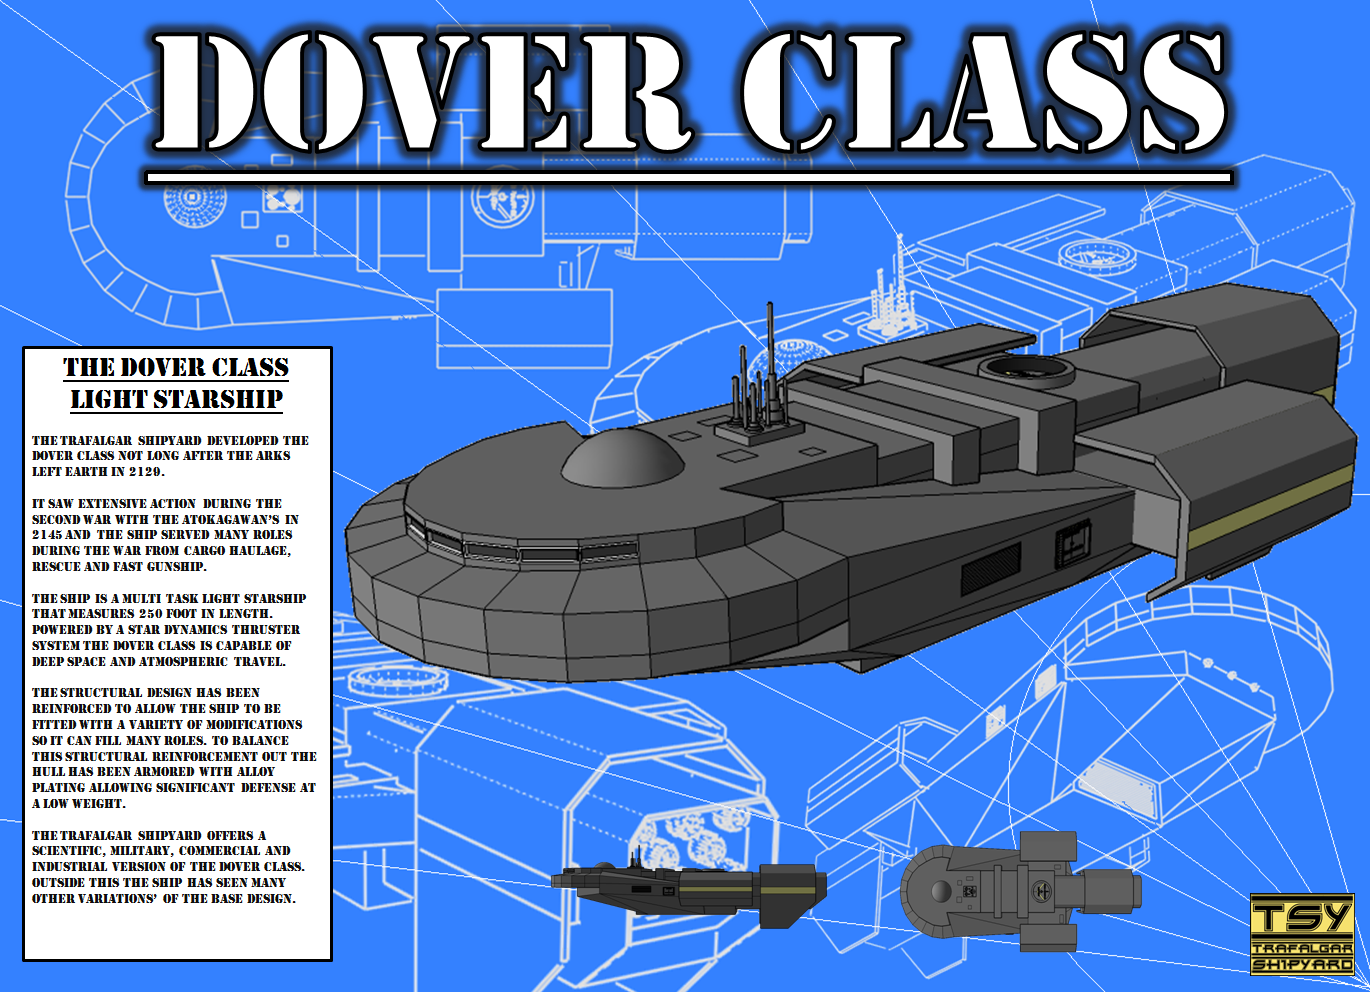 Dover class Poster